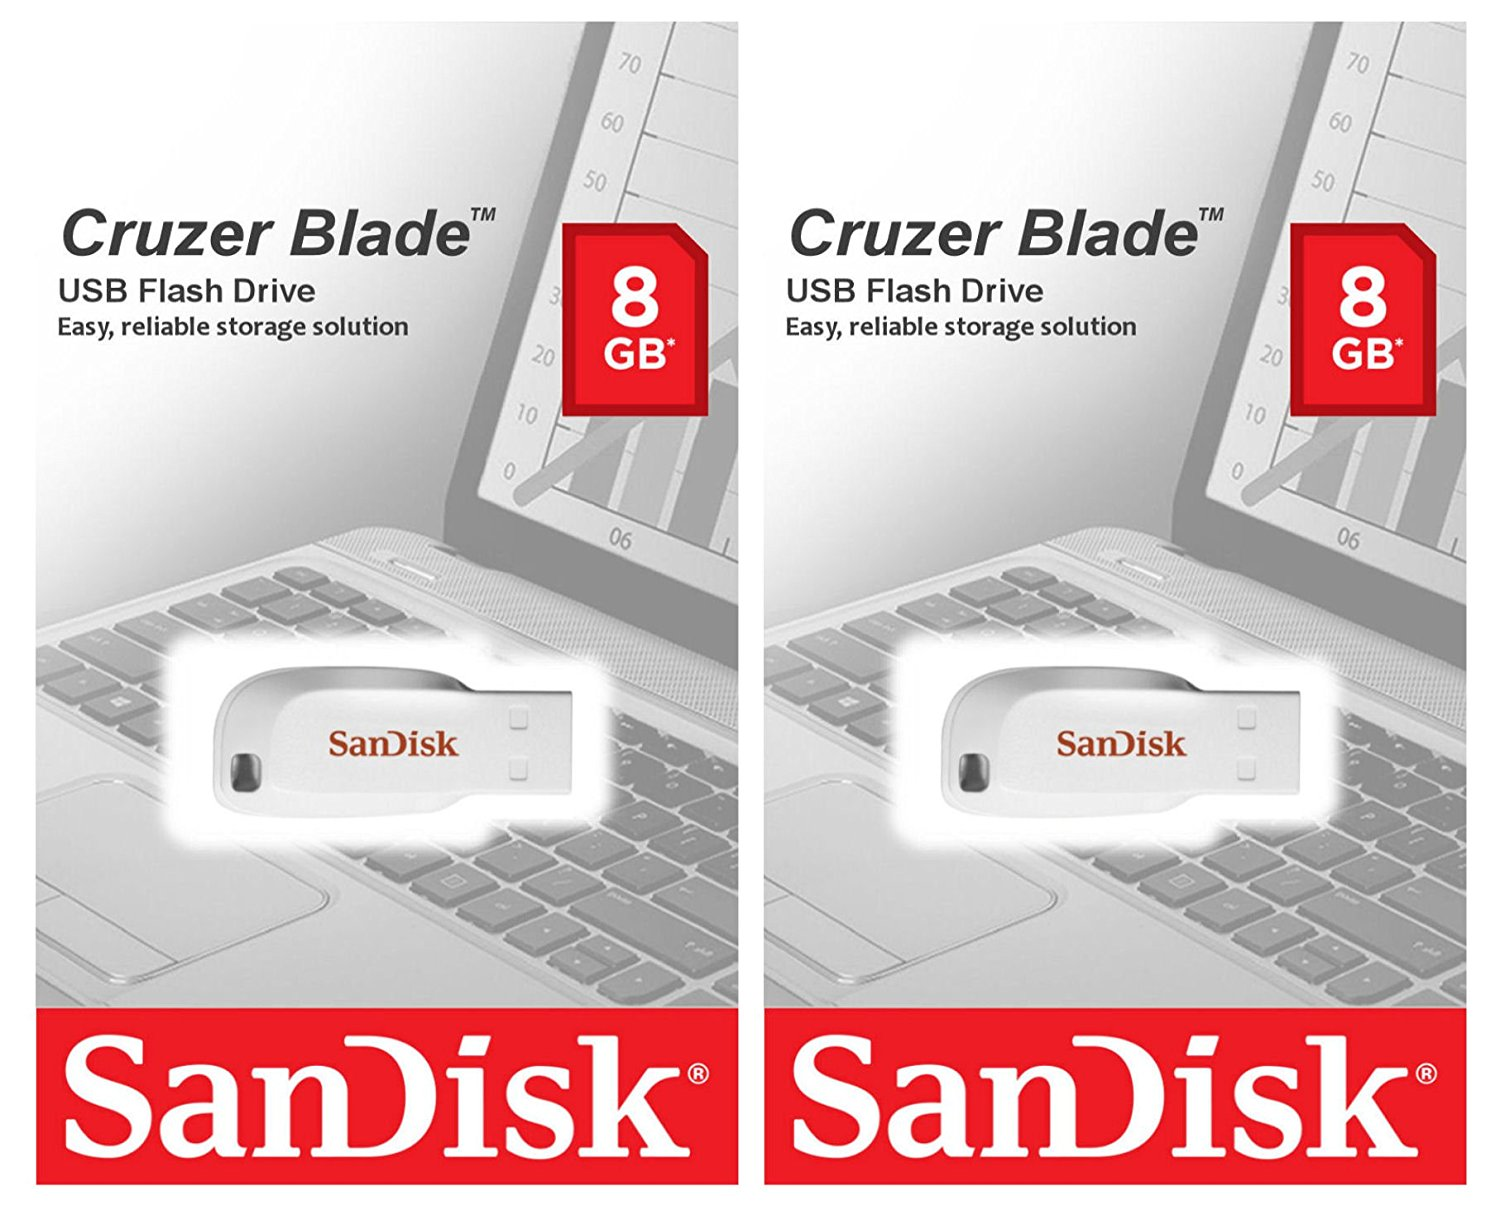 Cheap Cruzer 2gb Flash Drive Find Deals On Sandisk Flashdisk Edge Cz51 Get Quotations Lot Of 2 Blade 8gb Usb 20 Thumb Stick White Sdcz50c